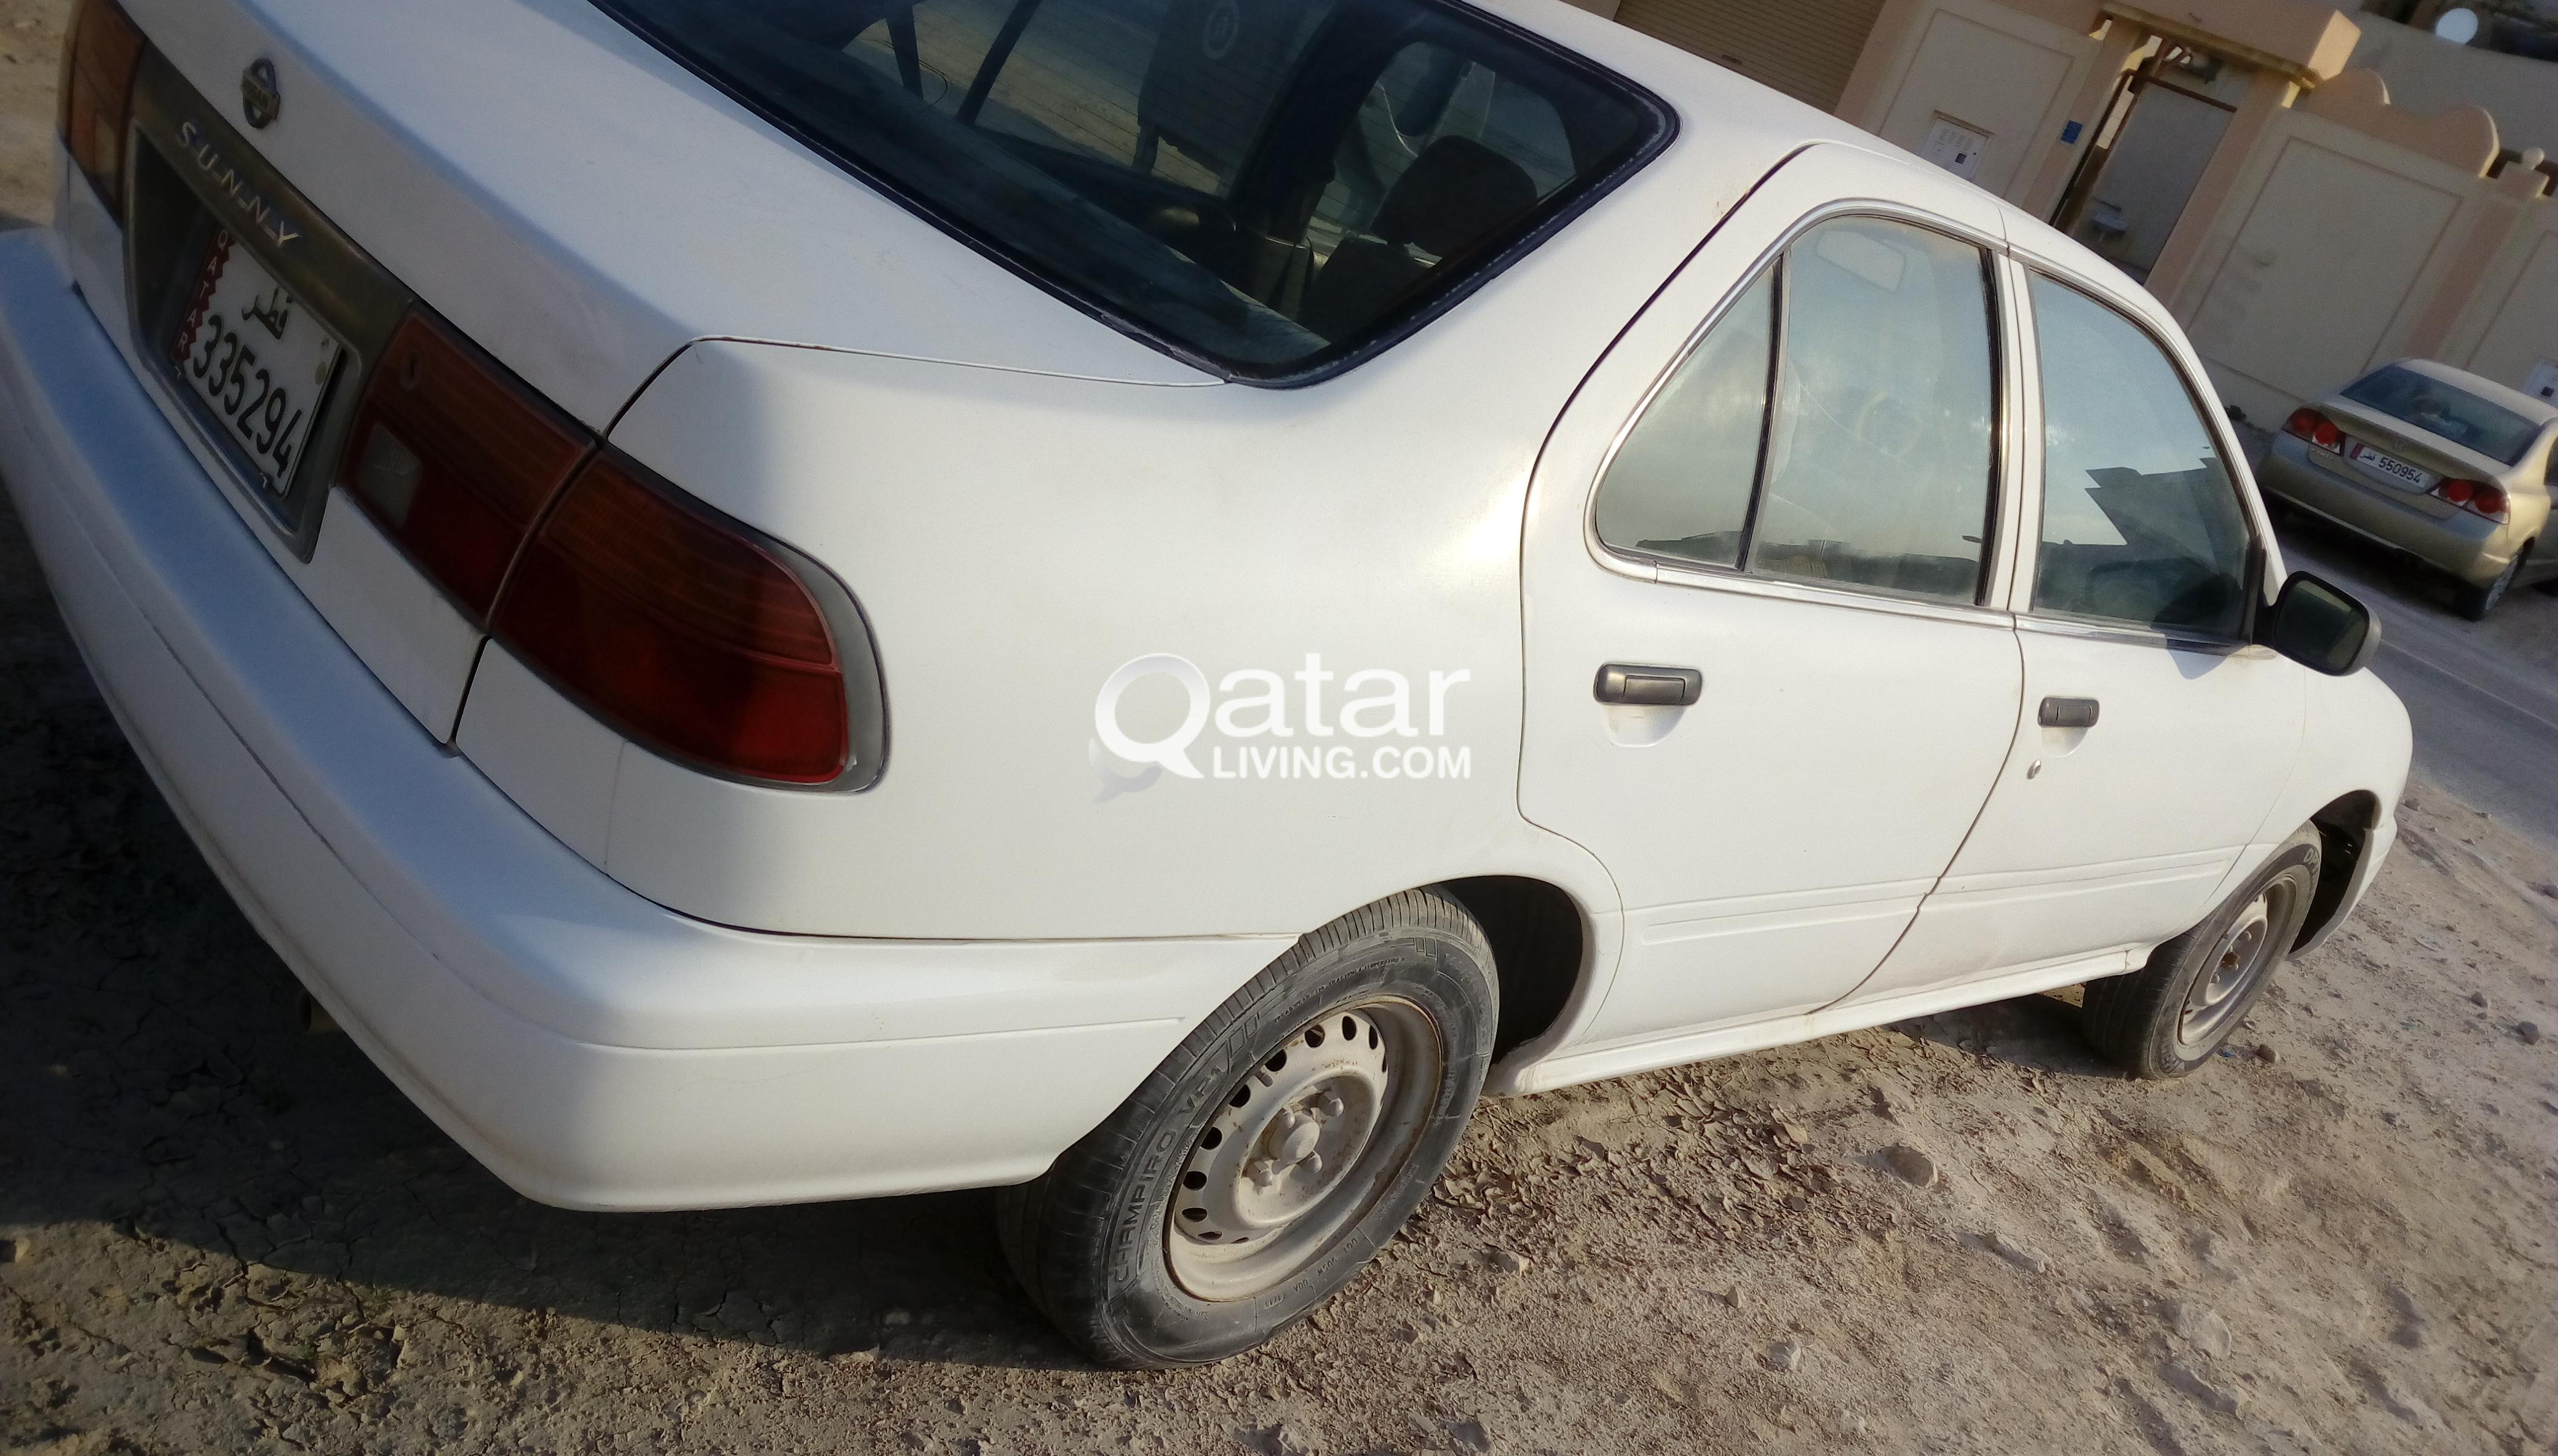 Car parts sell | Qatar Living